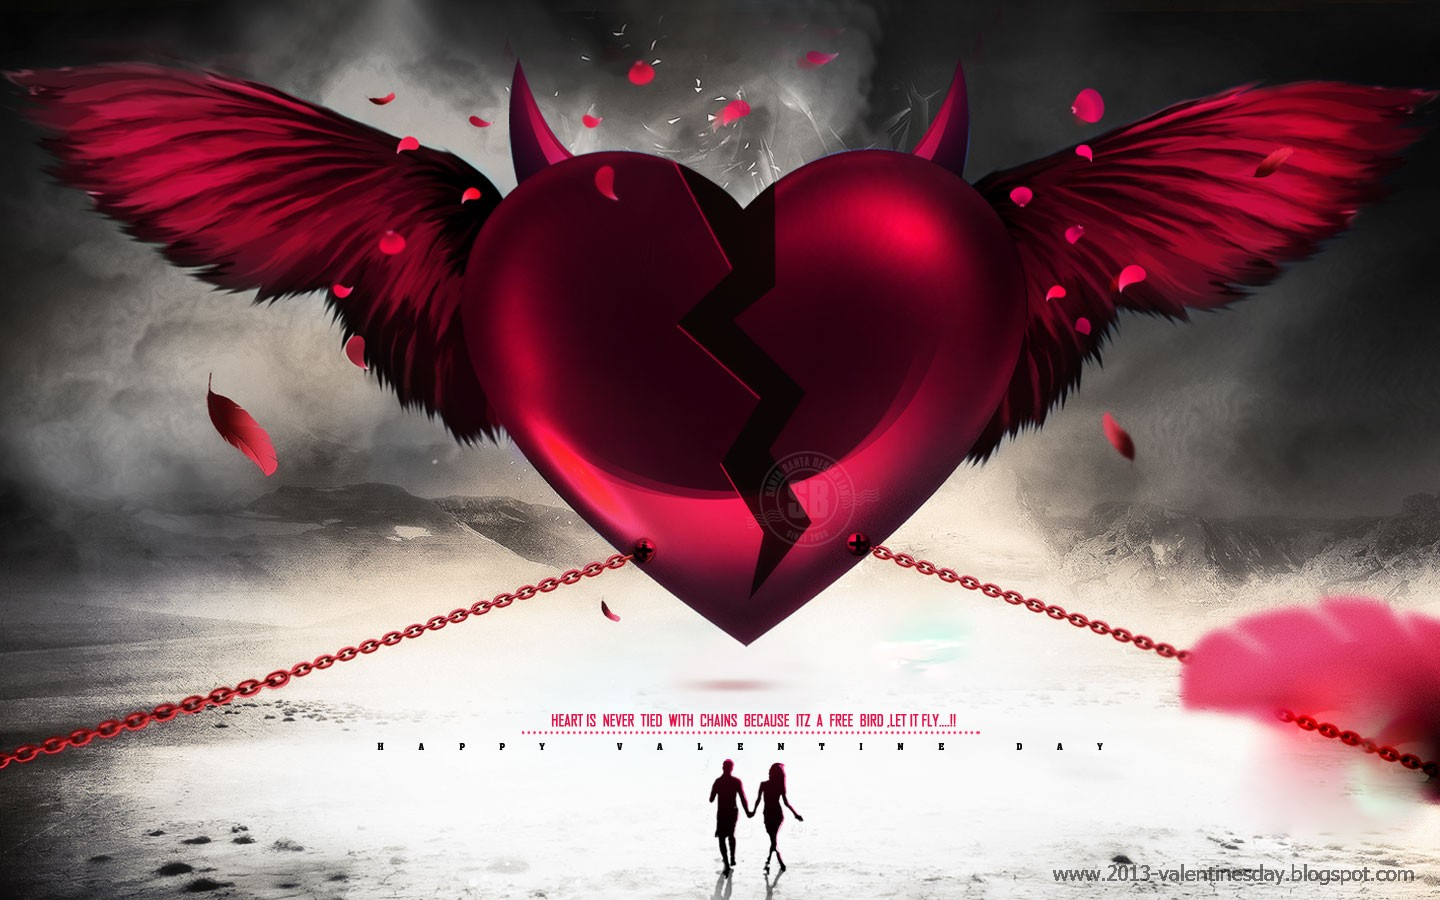 Valentines day 2013 HD wallpapers 1024px 1920px Quotes Wallpapers 1440x900